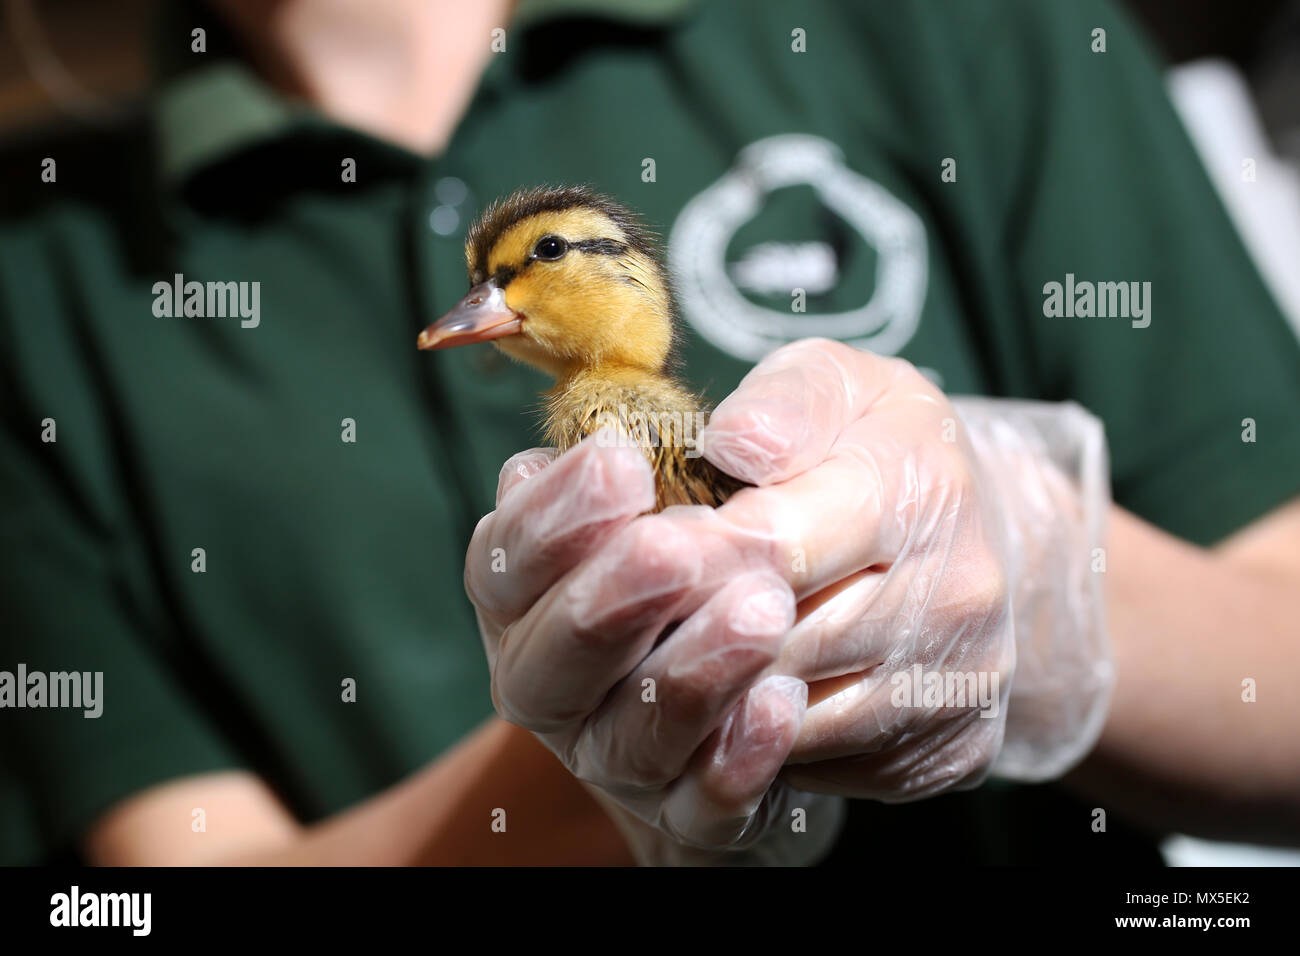 Baby animals pictured at the Brent Lodge Animal Centre near Chichester, West Sussex, UK. - Stock Image